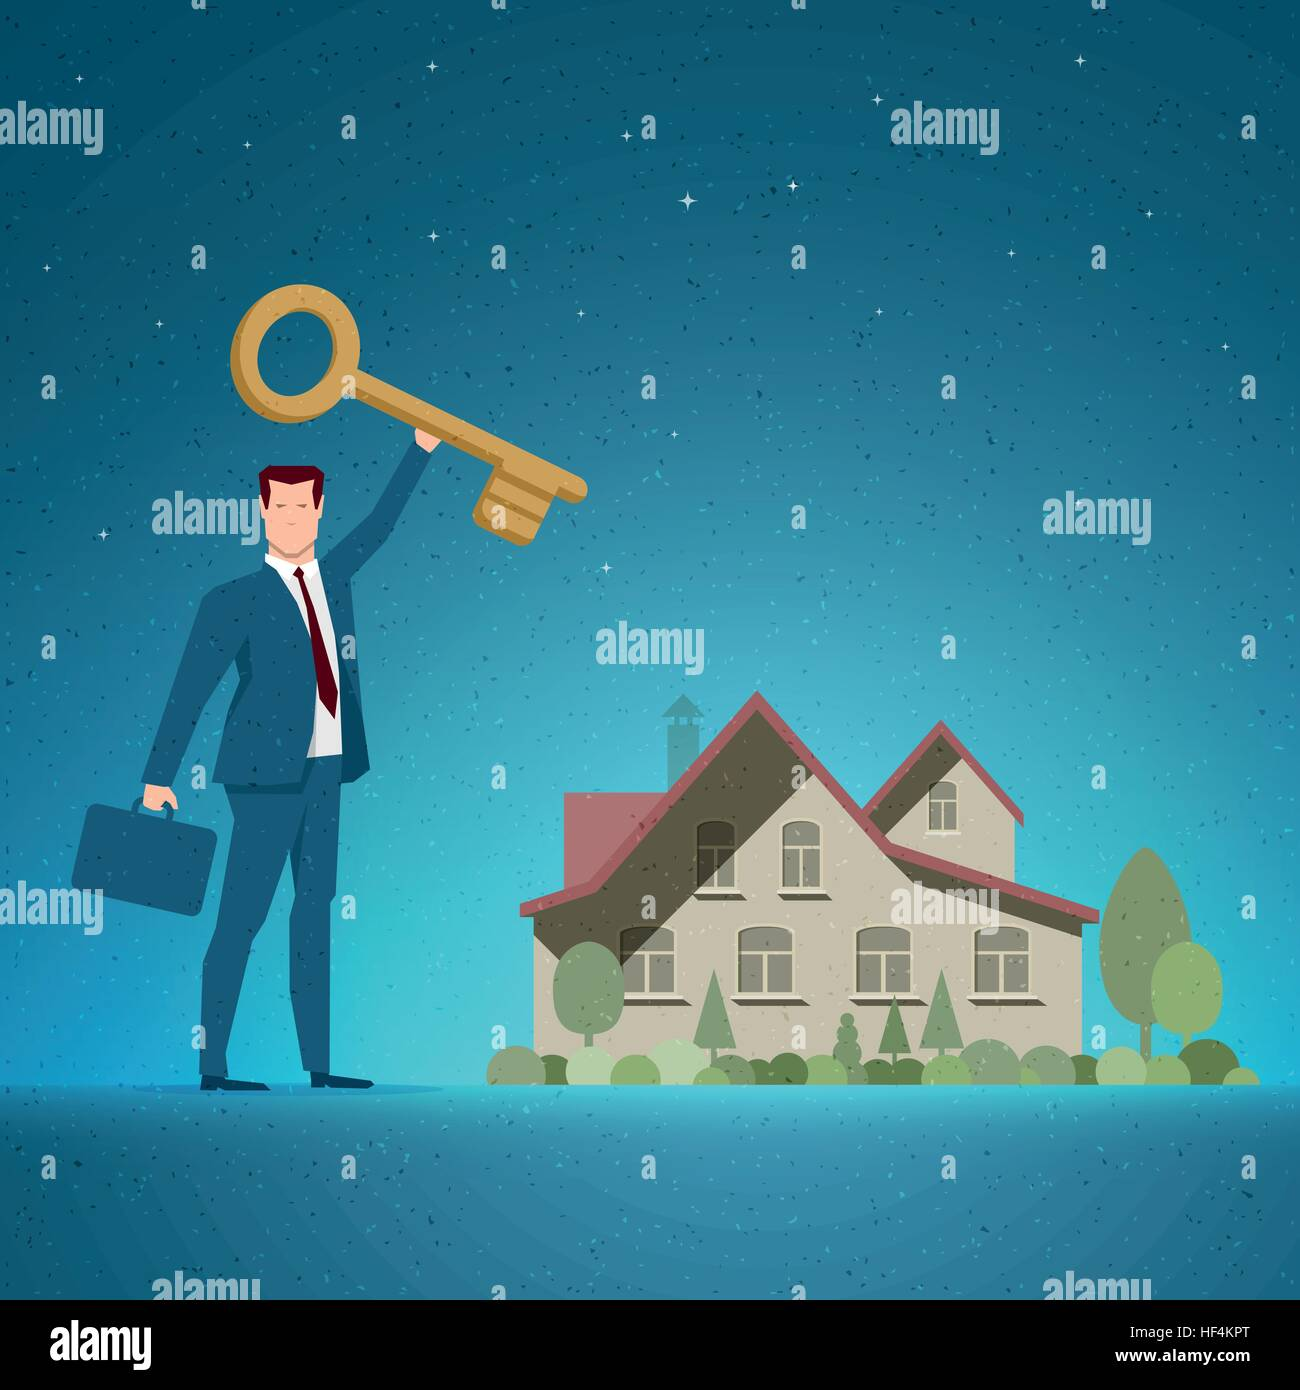 Business concept vector illustration. Investing, real estate, investment opportunity, selling or buying concept. - Stock Image